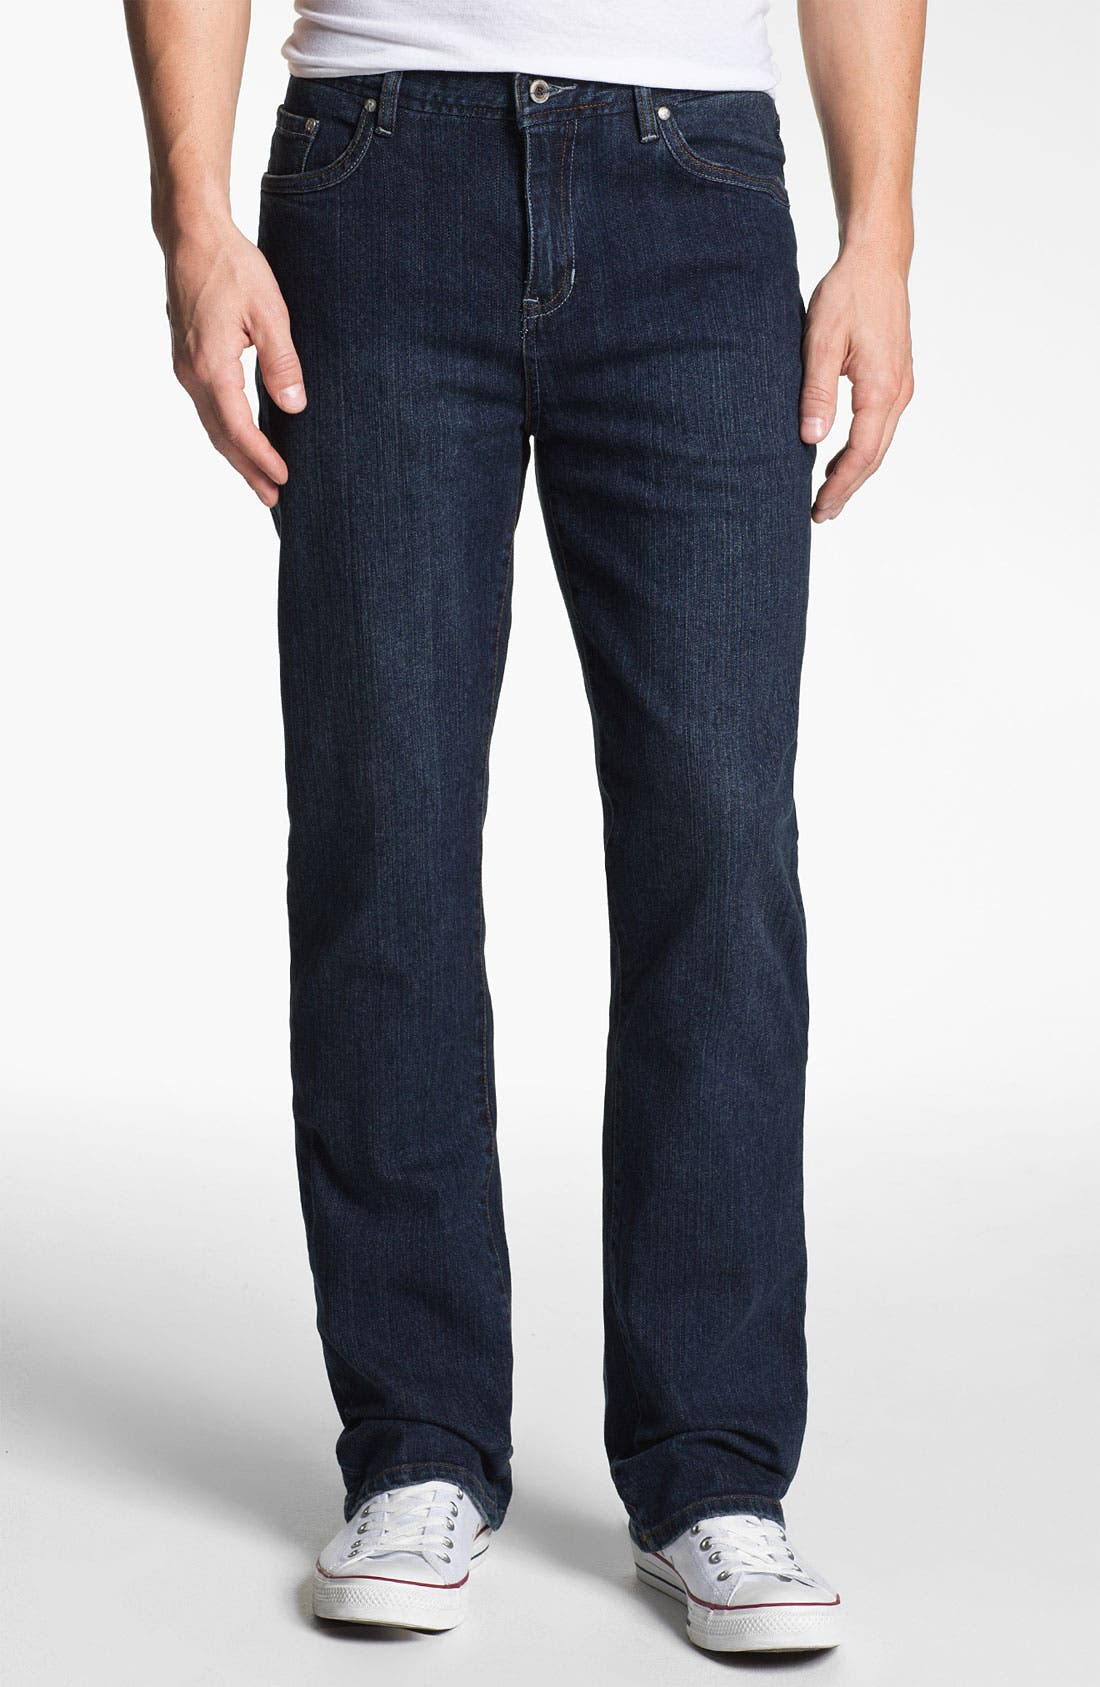 Main Image - ROAD 'Abbey Stretch' Relaxed Fit Straight Leg Jeans (Dark Wash)